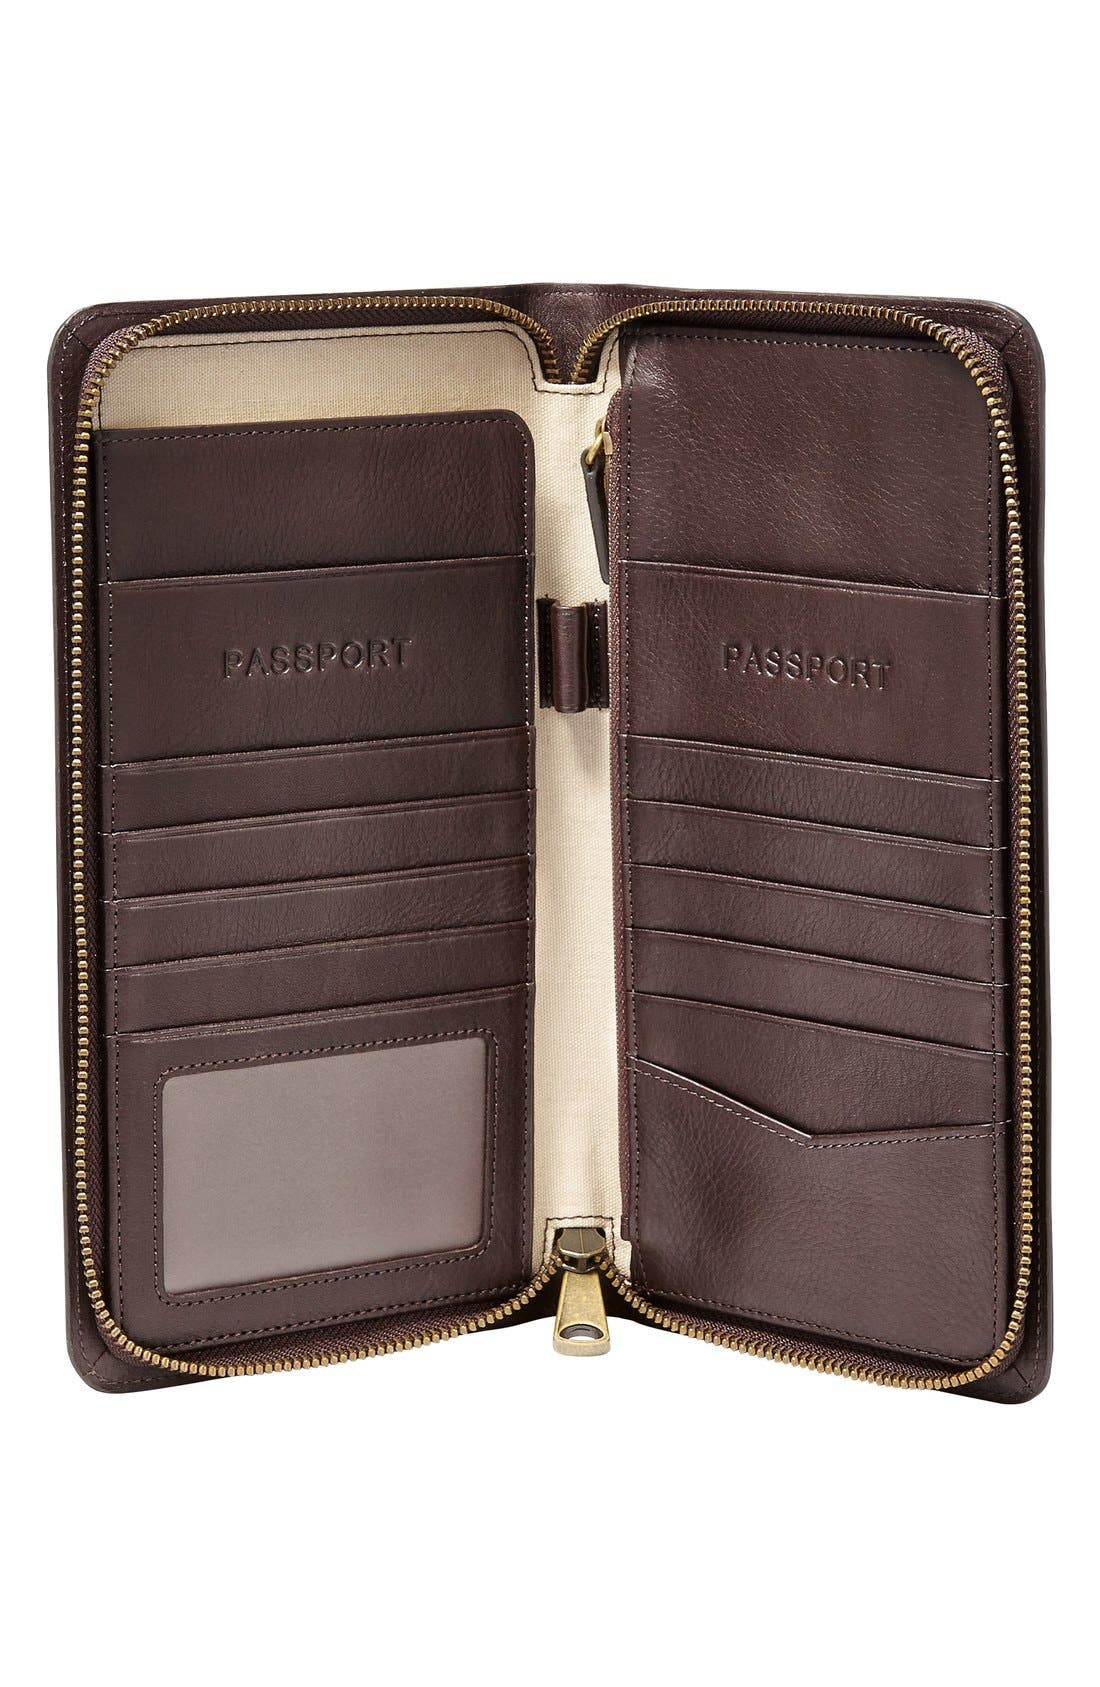 Leather Zip Passport Case,                             Alternate thumbnail 2, color,                             201